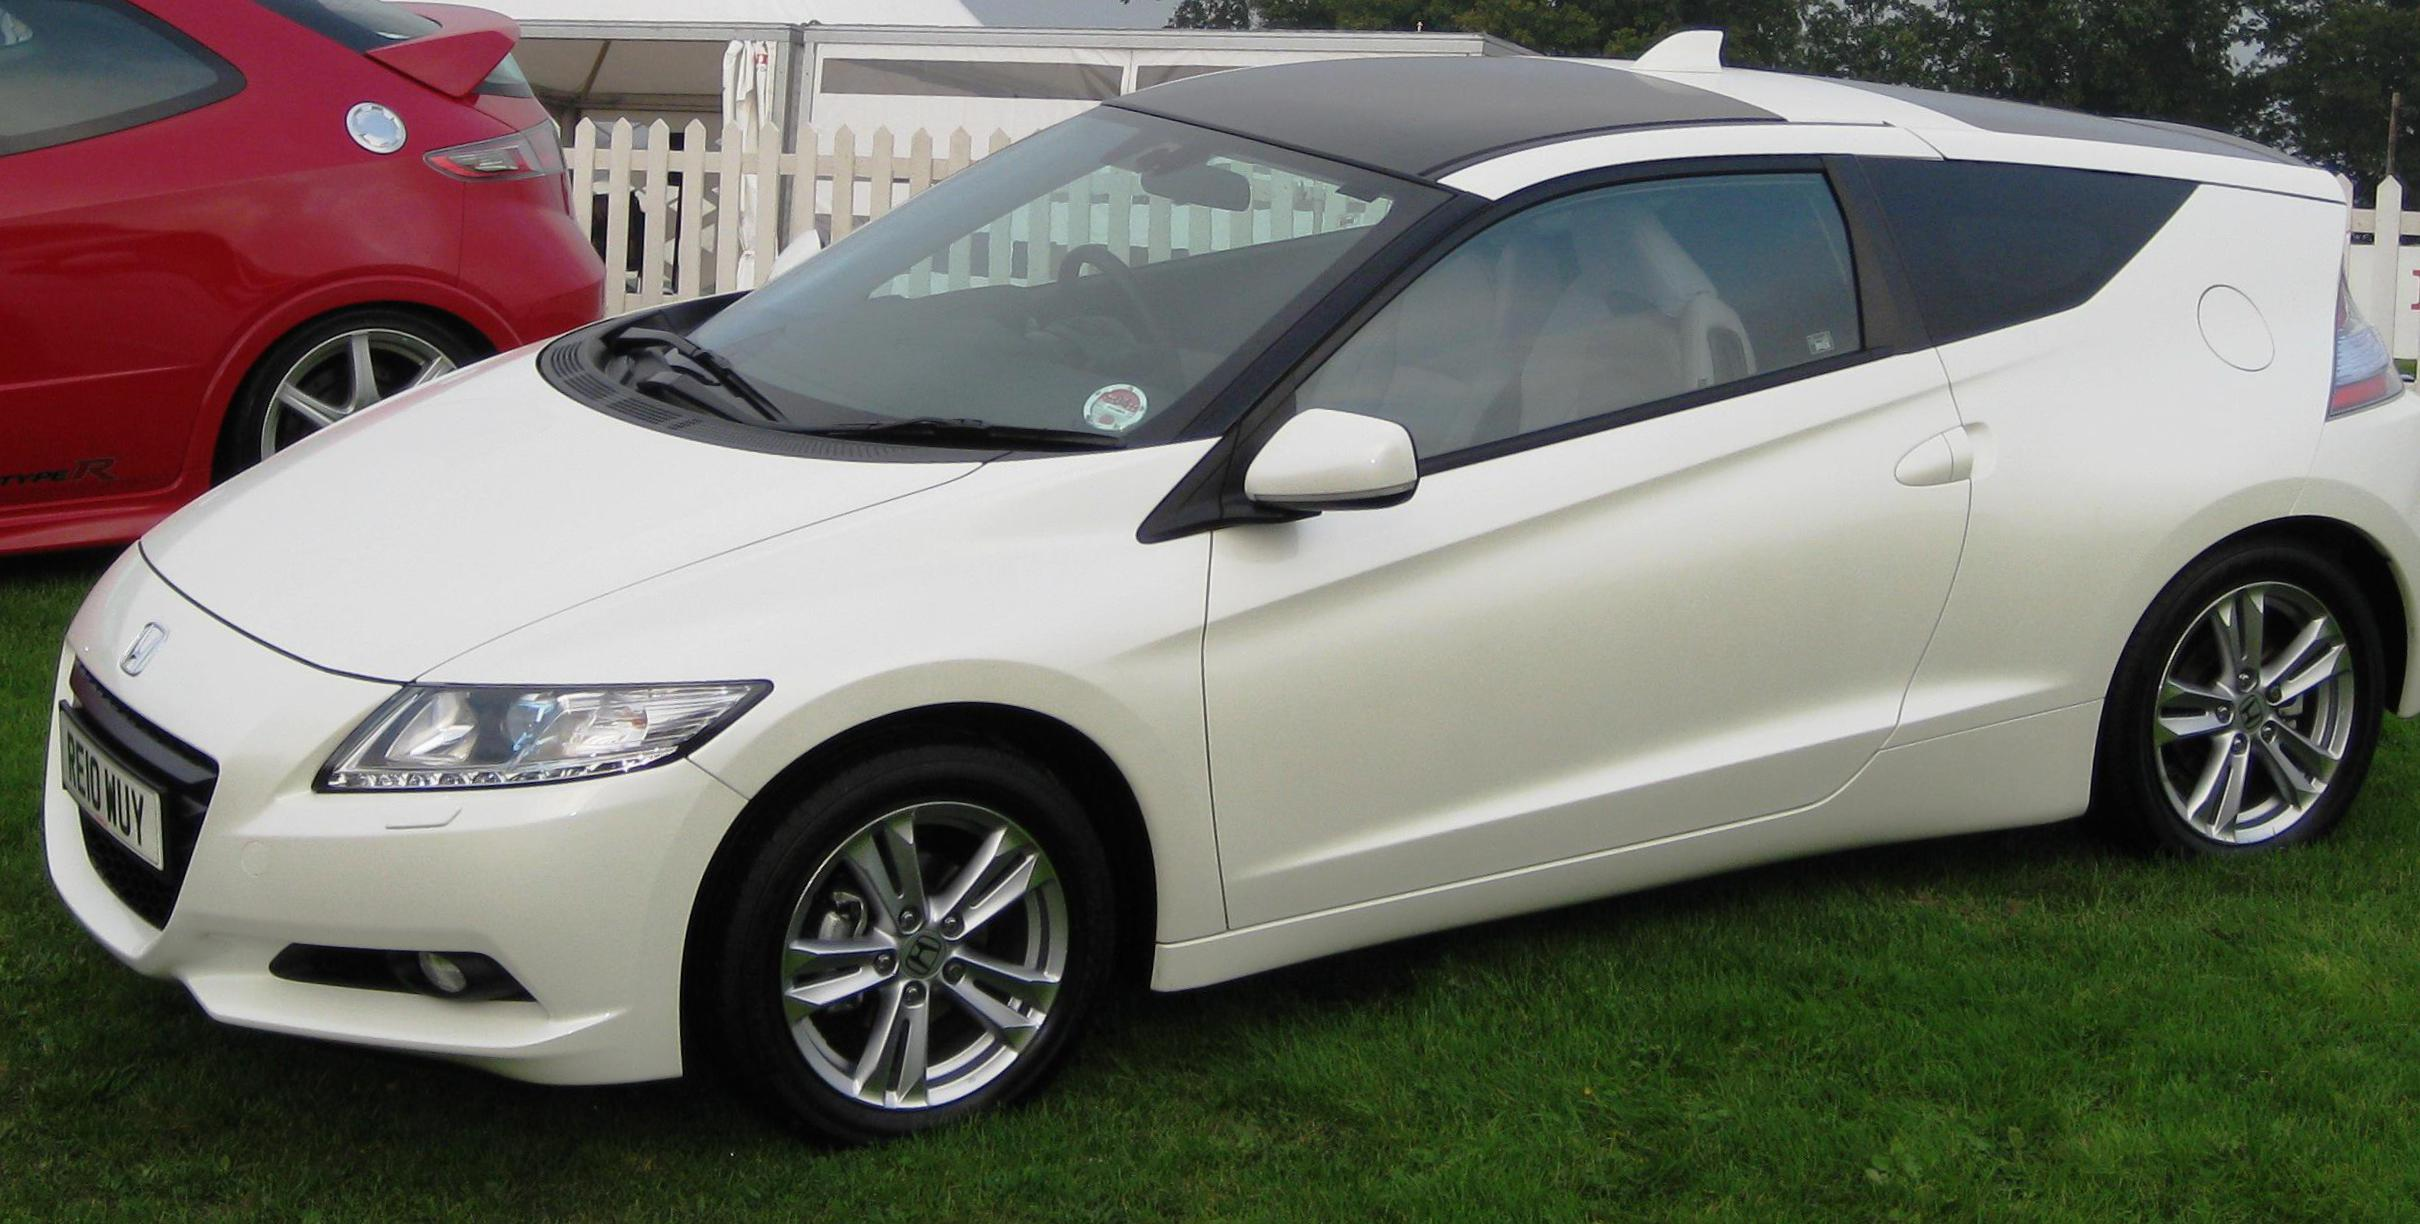 Honda CR-Z how mach 2010